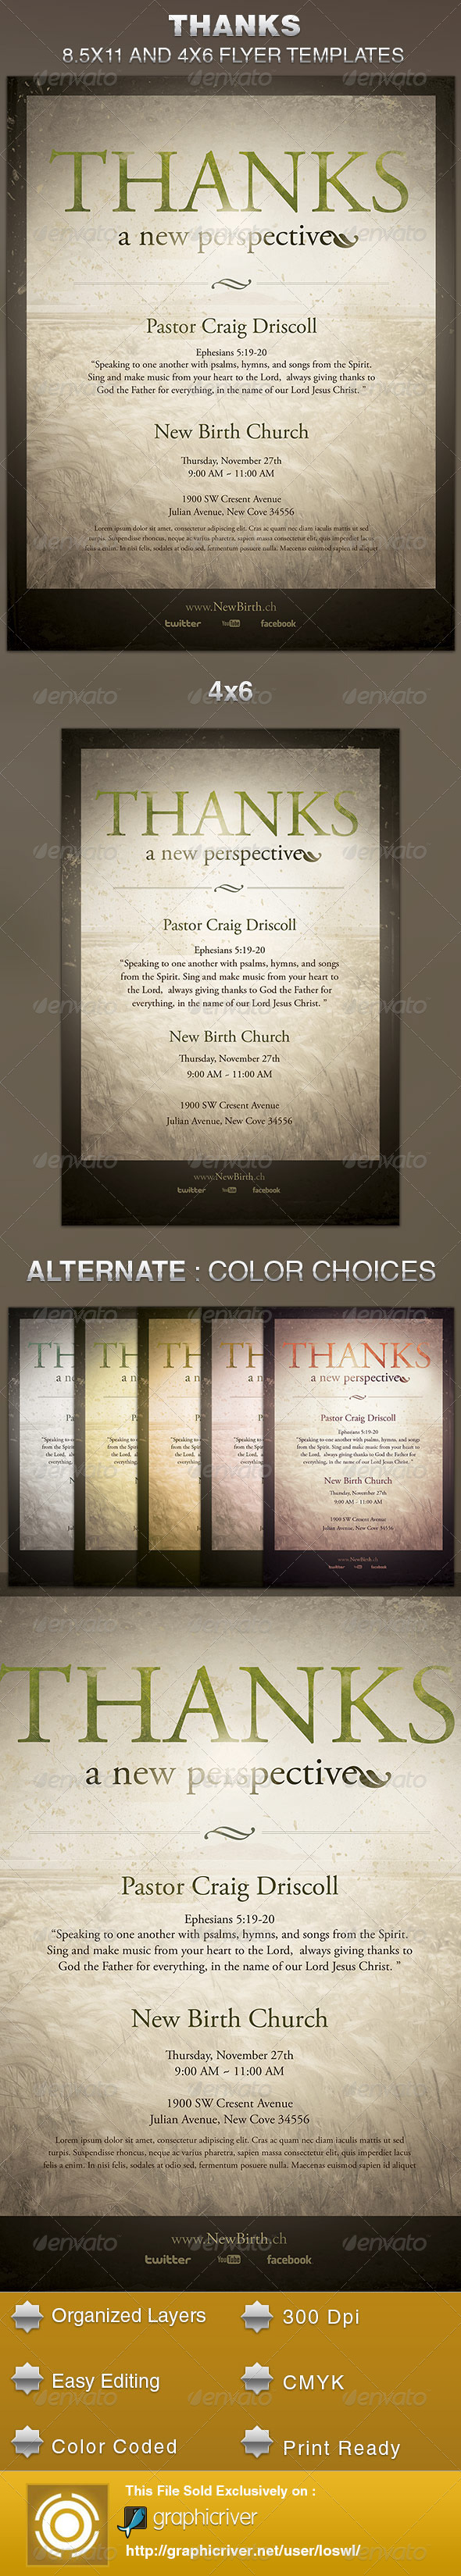 Thanks-A New Perspective Church Flyer Template - Church Flyers